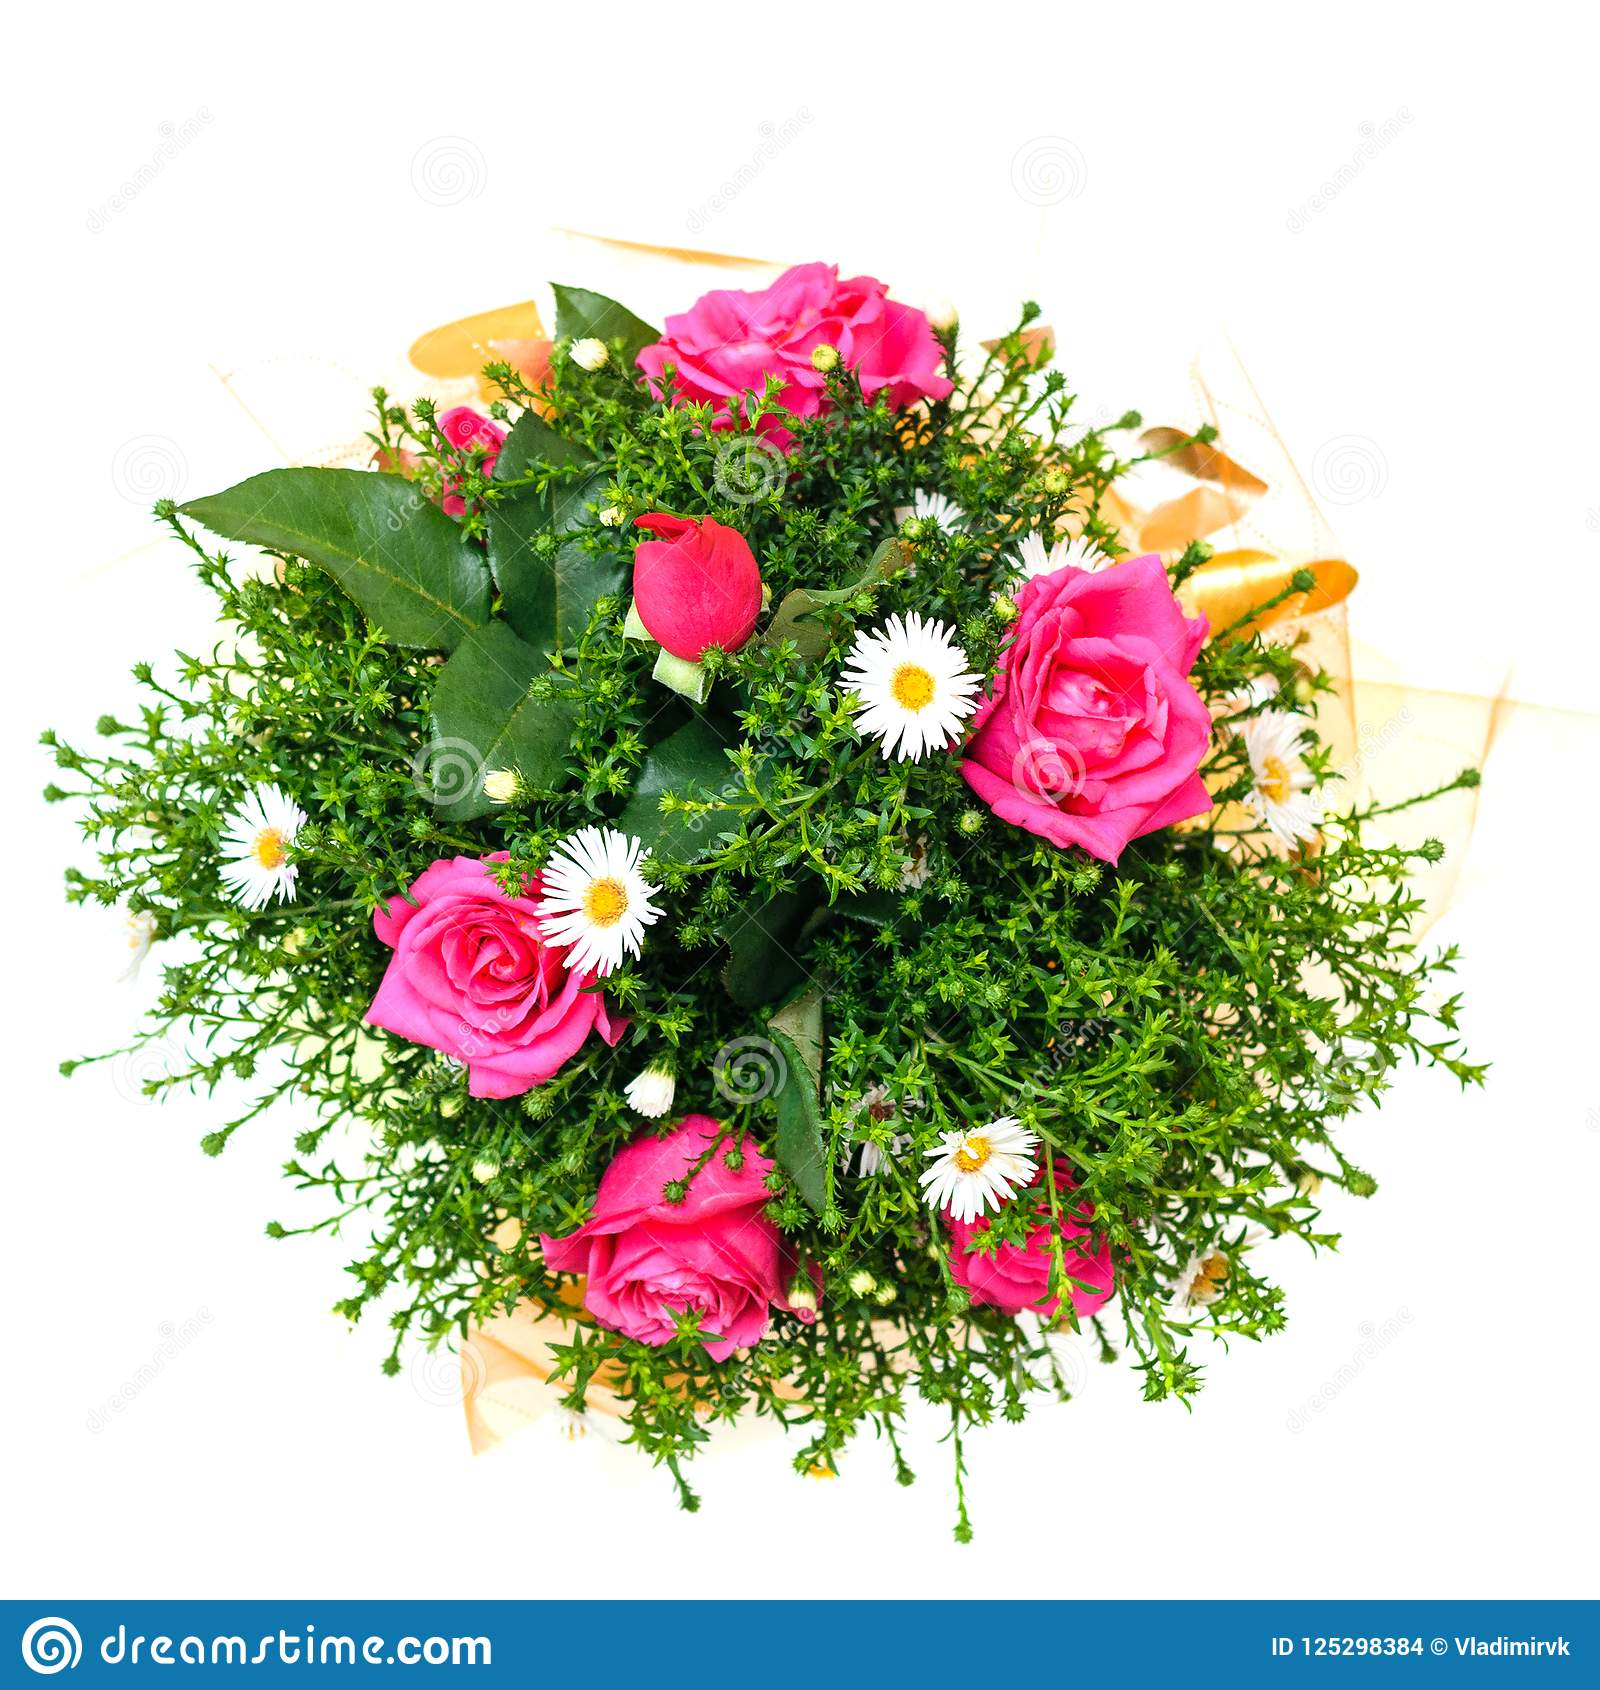 Beautiful Bouquet Of Red And White Flowers With Green Plants On